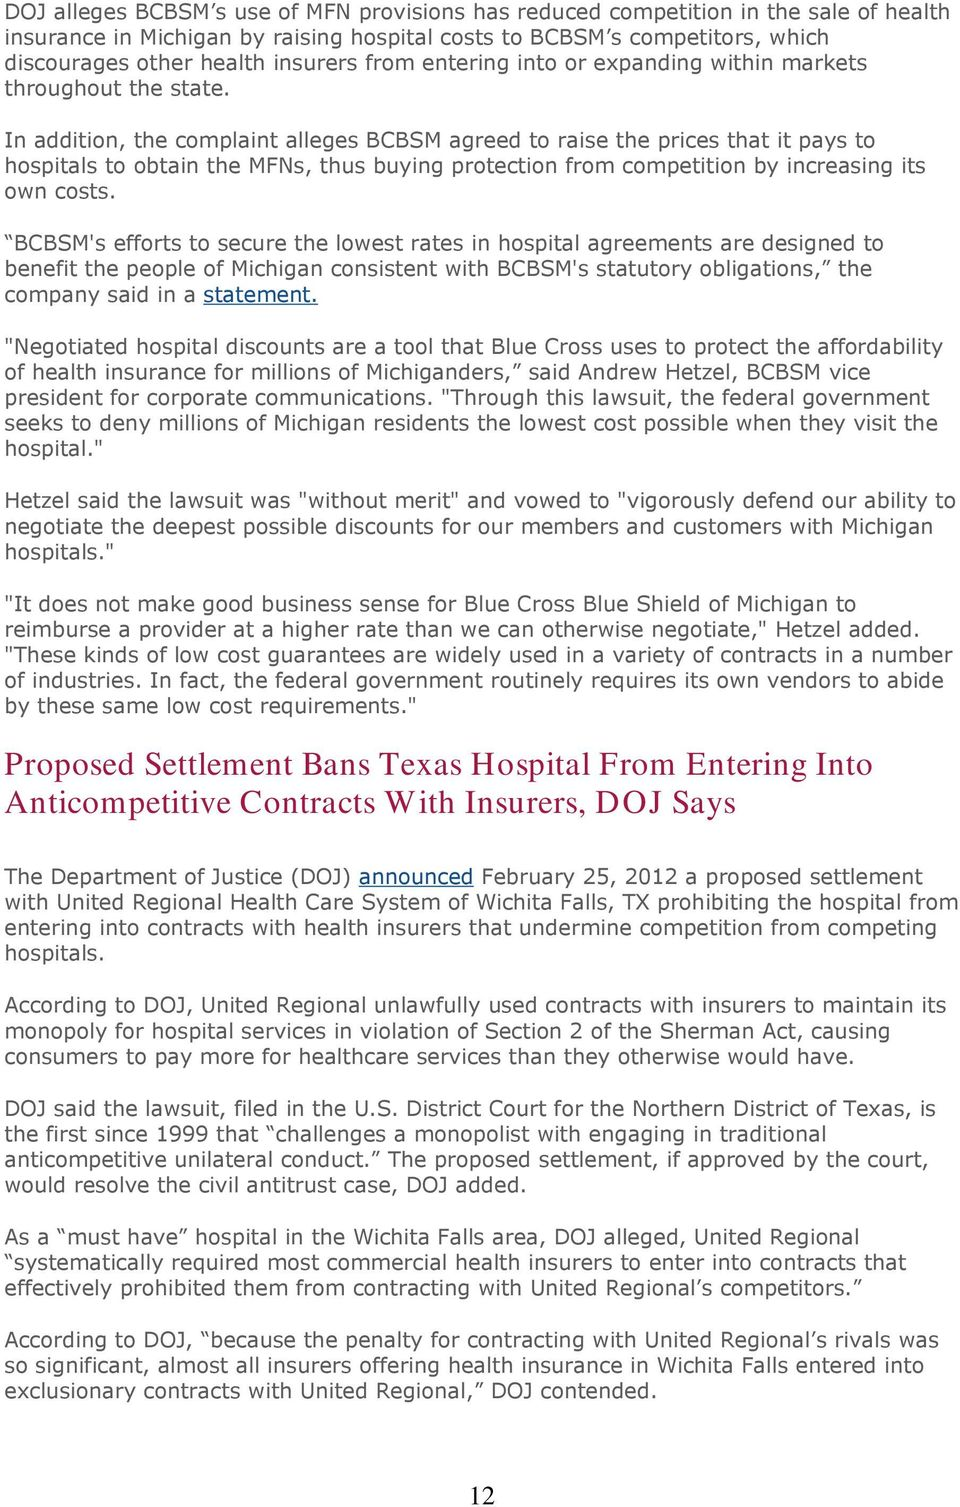 In addition, the complaint alleges BCBSM agreed to raise the prices that it pays to hospitals to obtain the MFNs, thus buying protection from competition by increasing its own costs.